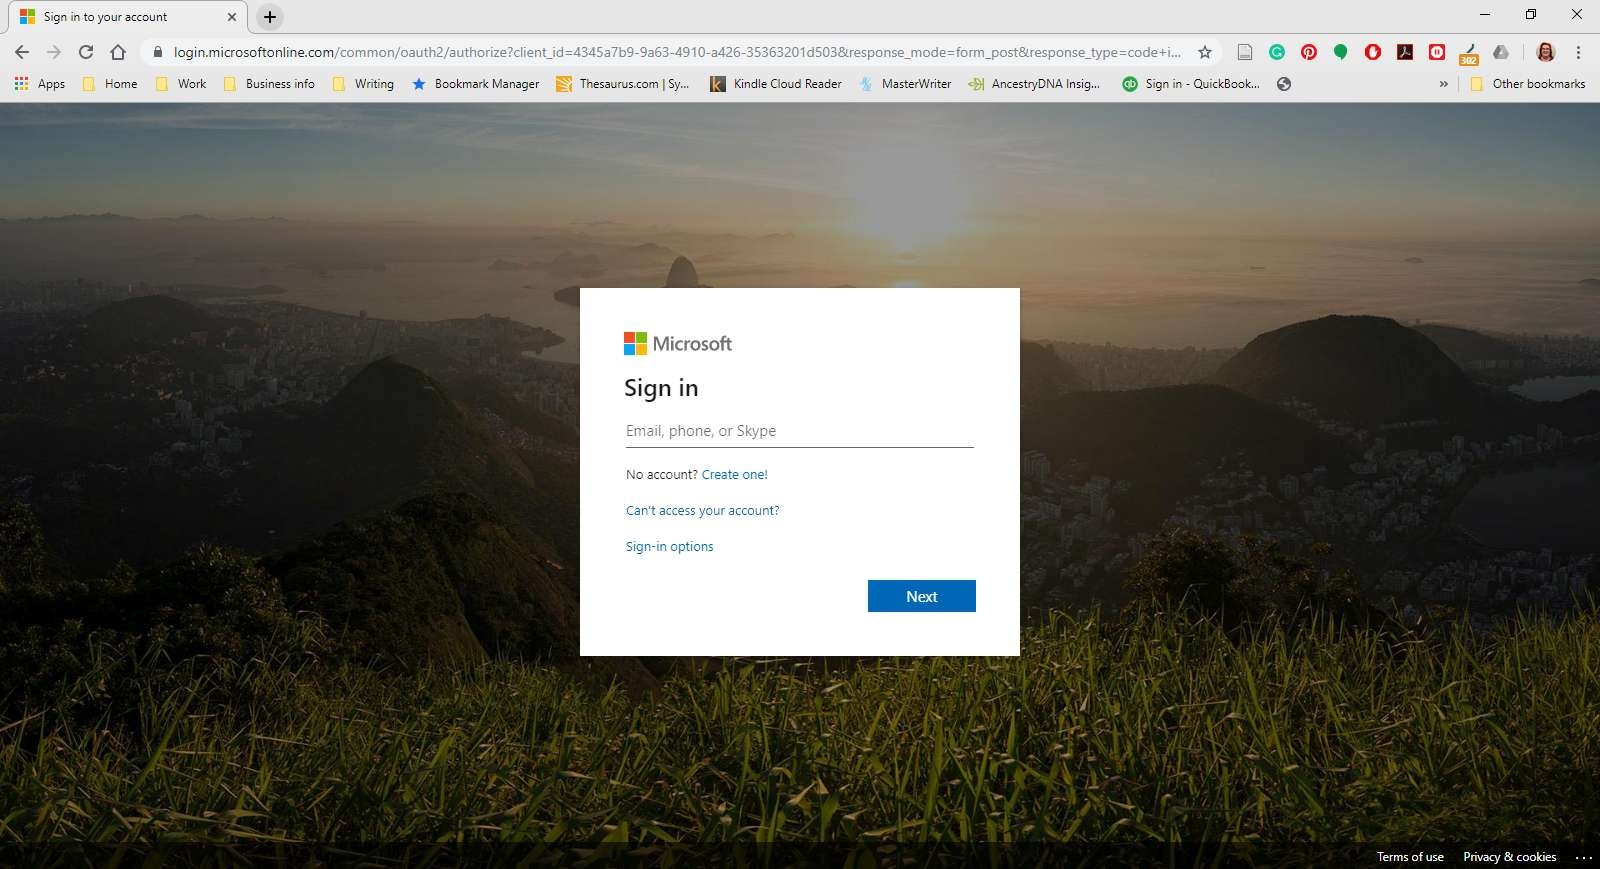 Microsoft Office website sign in.